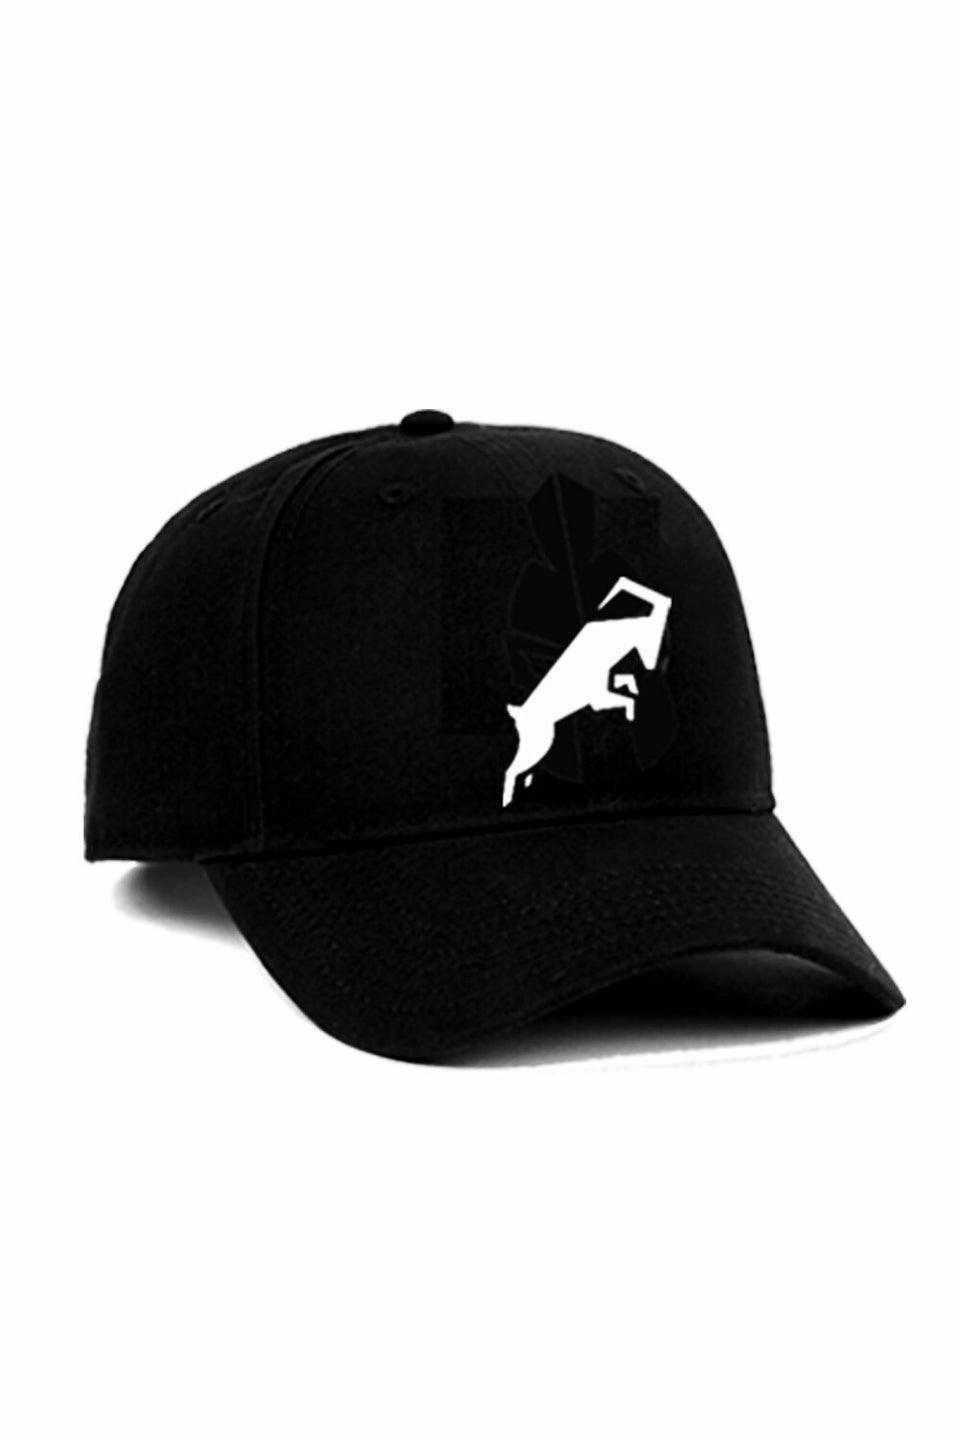 Ellipsis - Mountain Goat Peak Cap